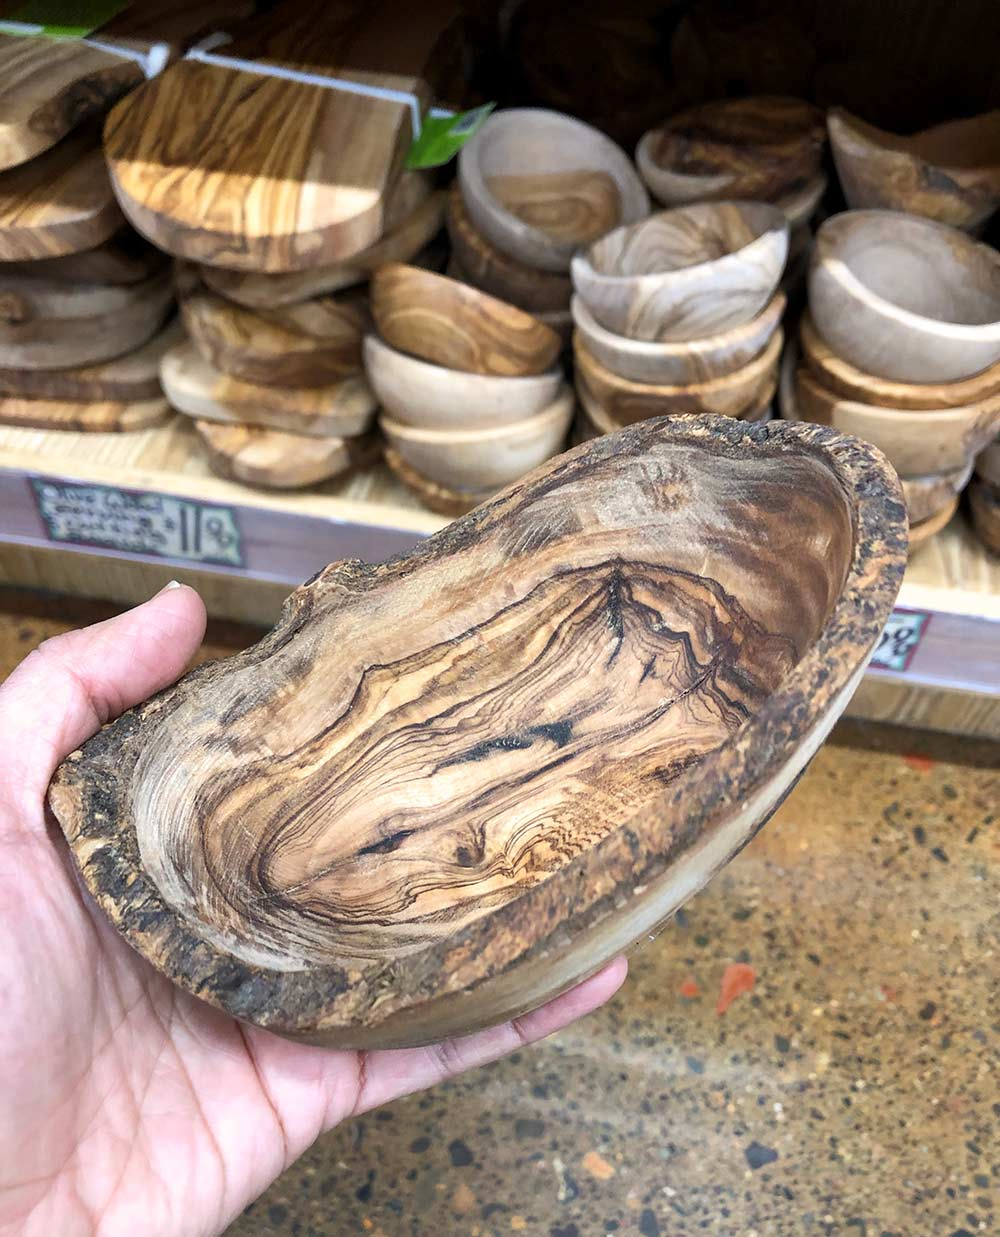 trader joes olivewood bowls in hand